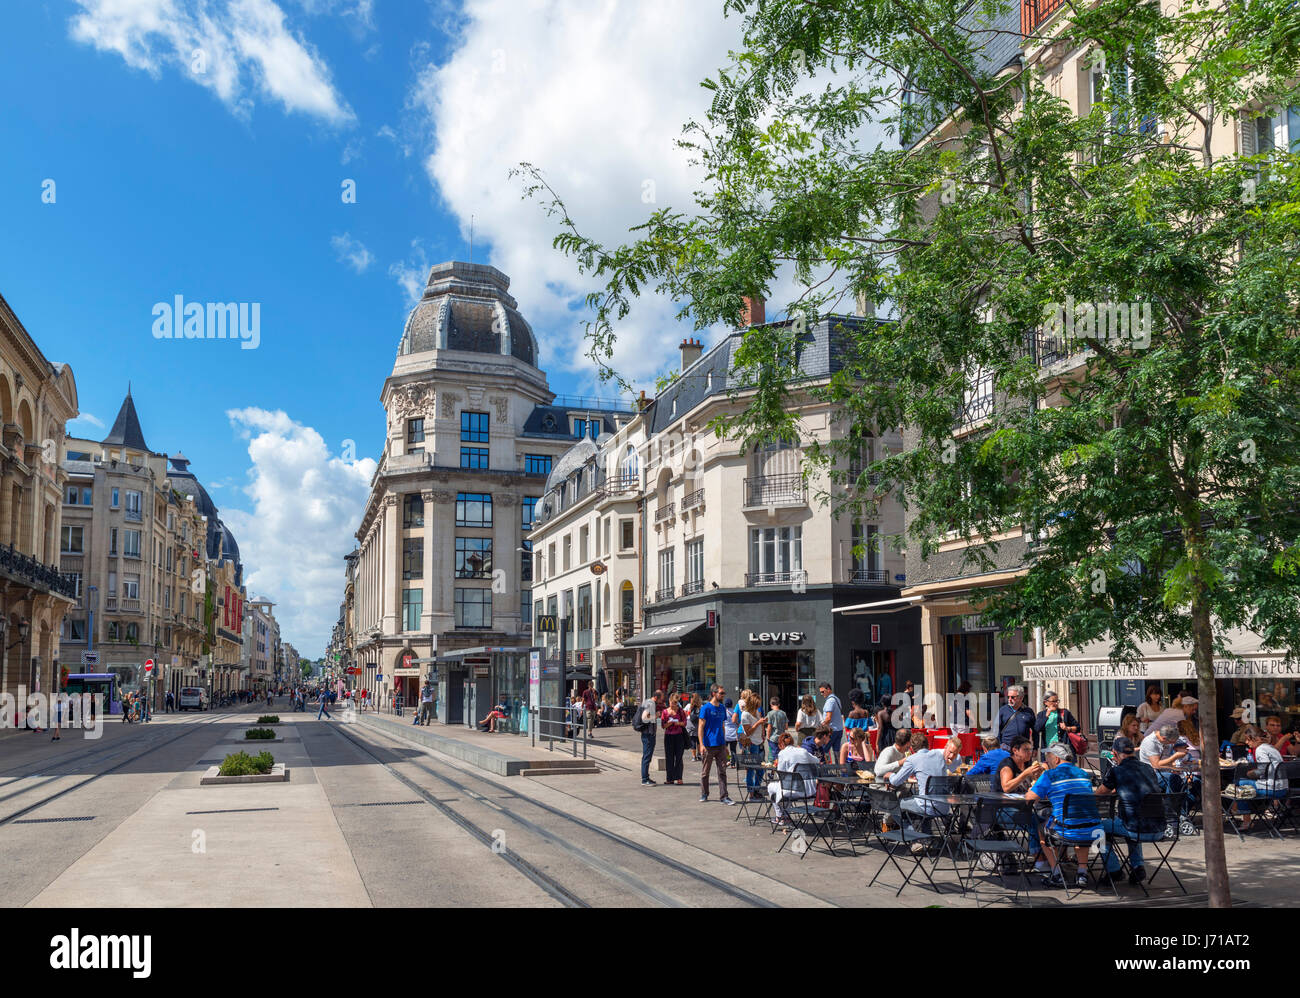 shops and cafe in the city centre rue de vesle reims france stock photo 142016002 alamy. Black Bedroom Furniture Sets. Home Design Ideas